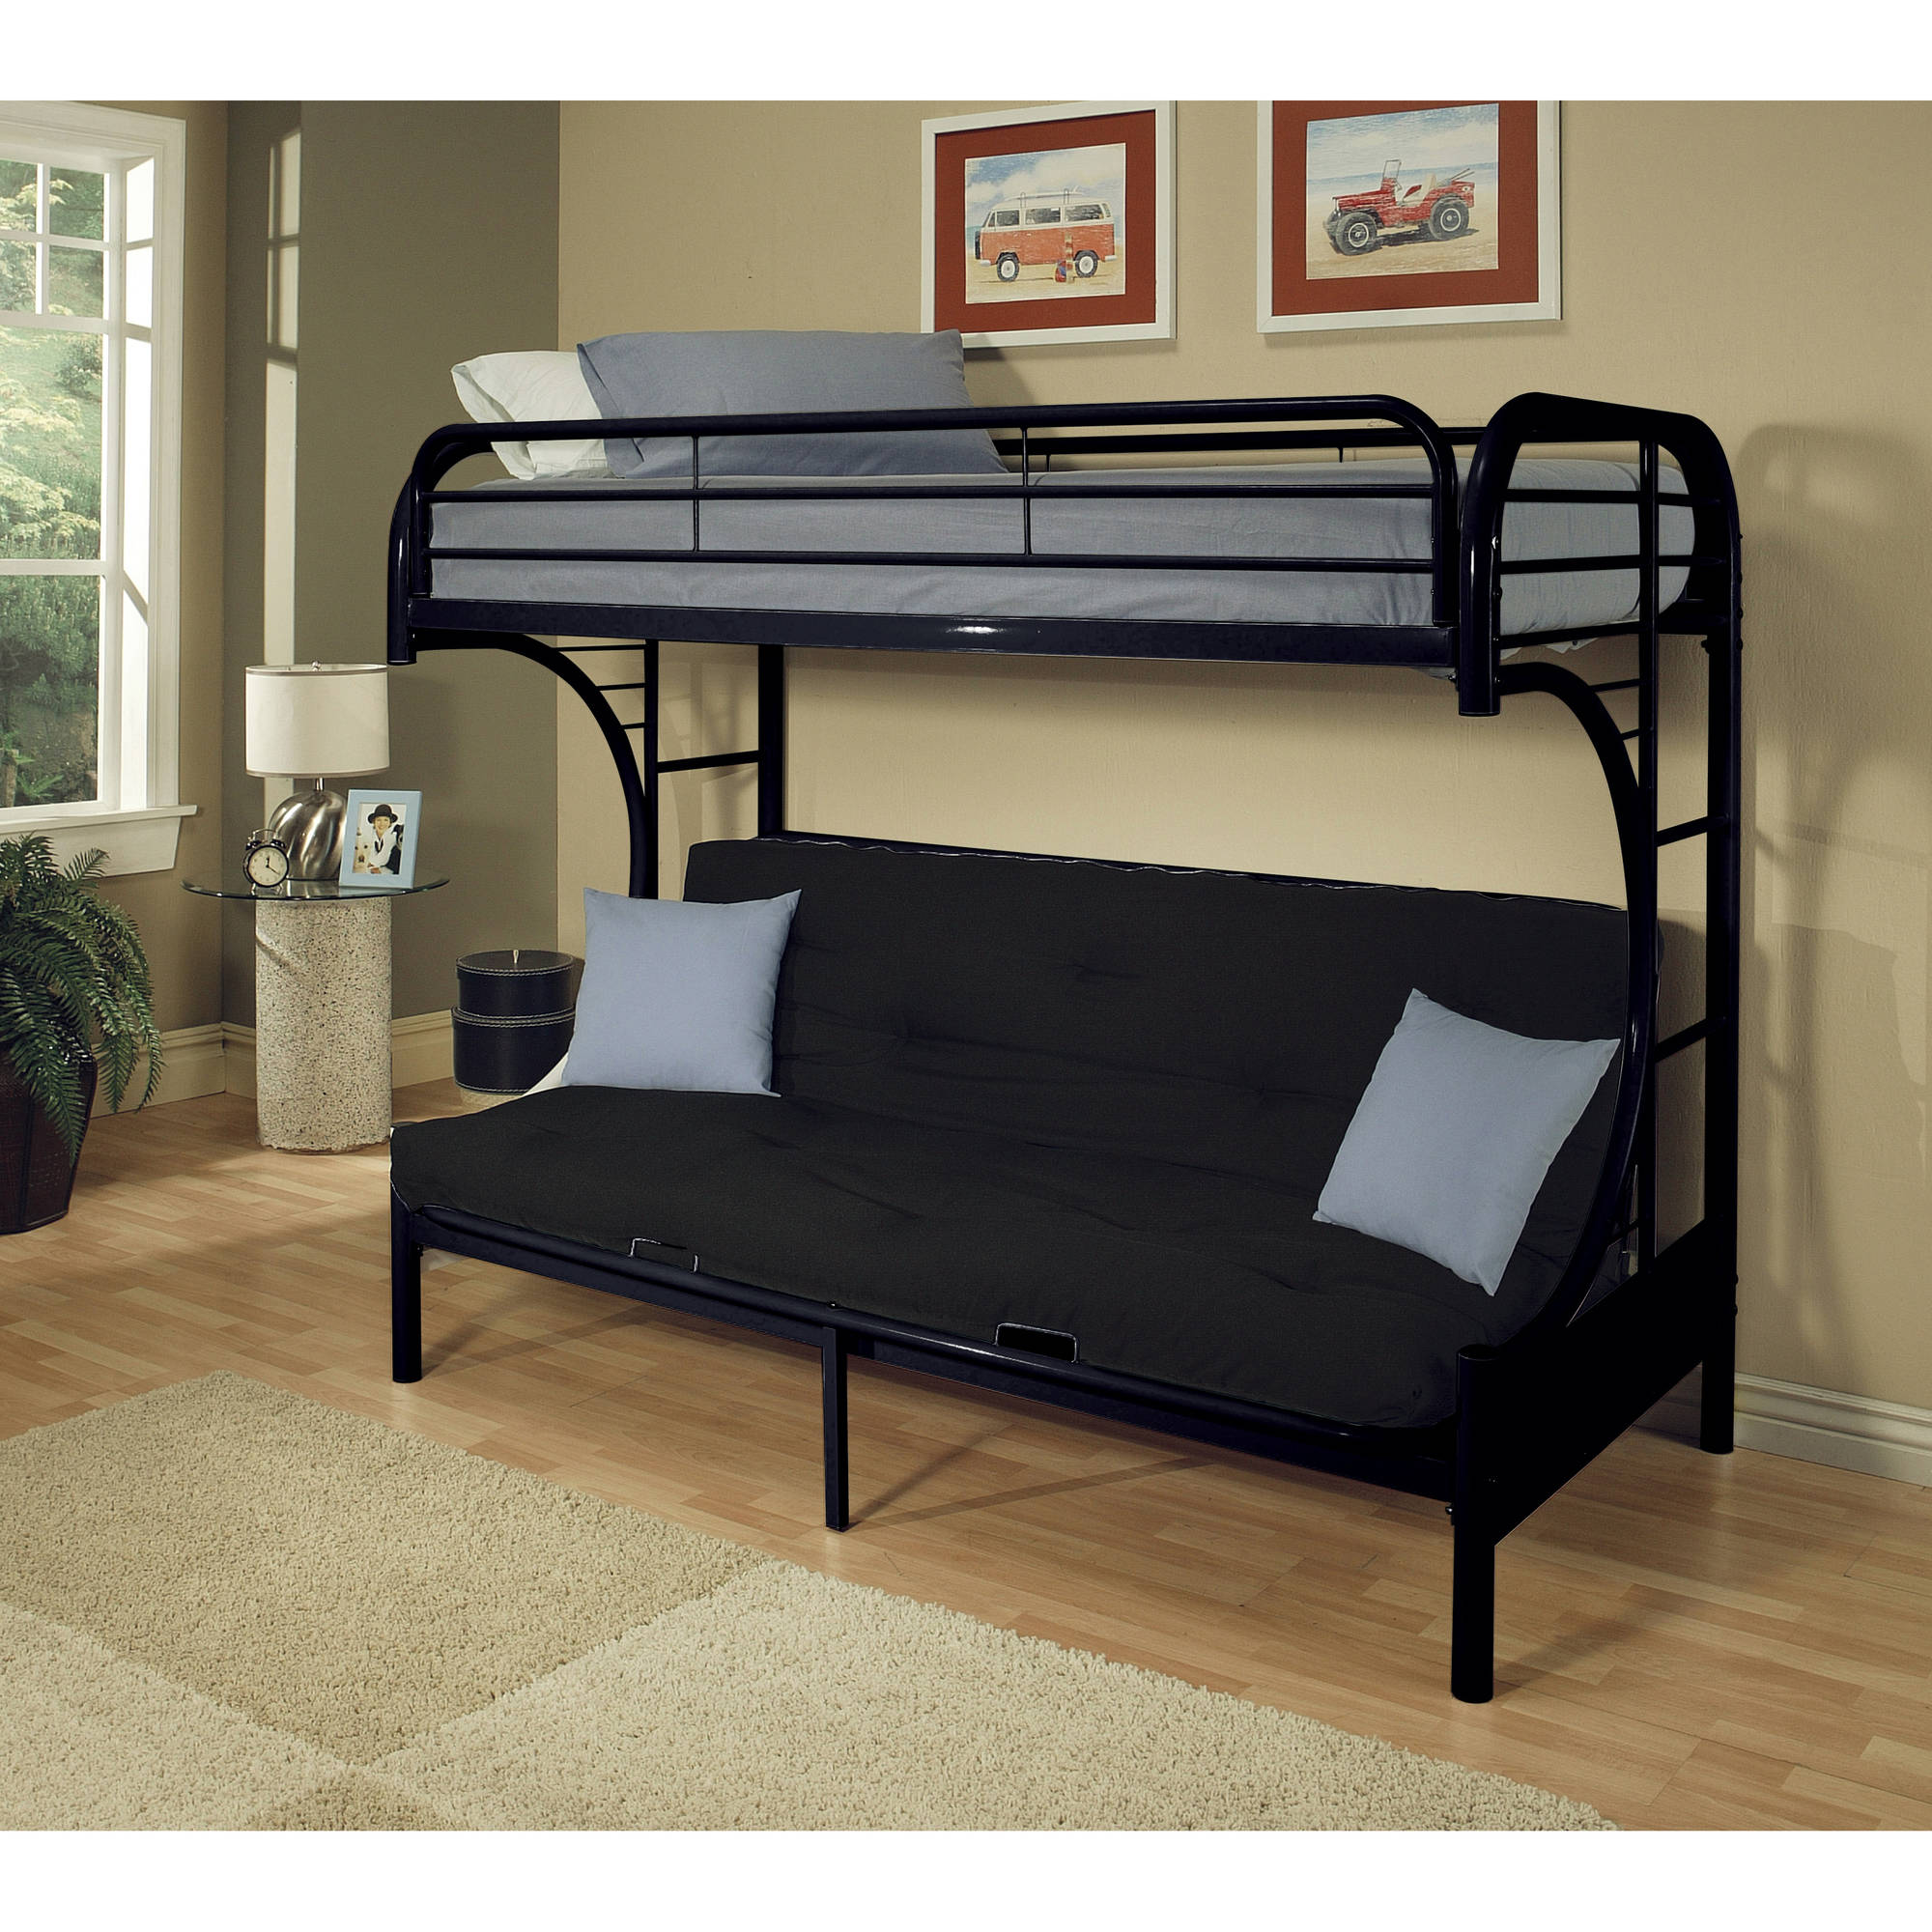 Eclipse Twin XL/Queen/Futon Bunk Bed, Black - Walmart.com